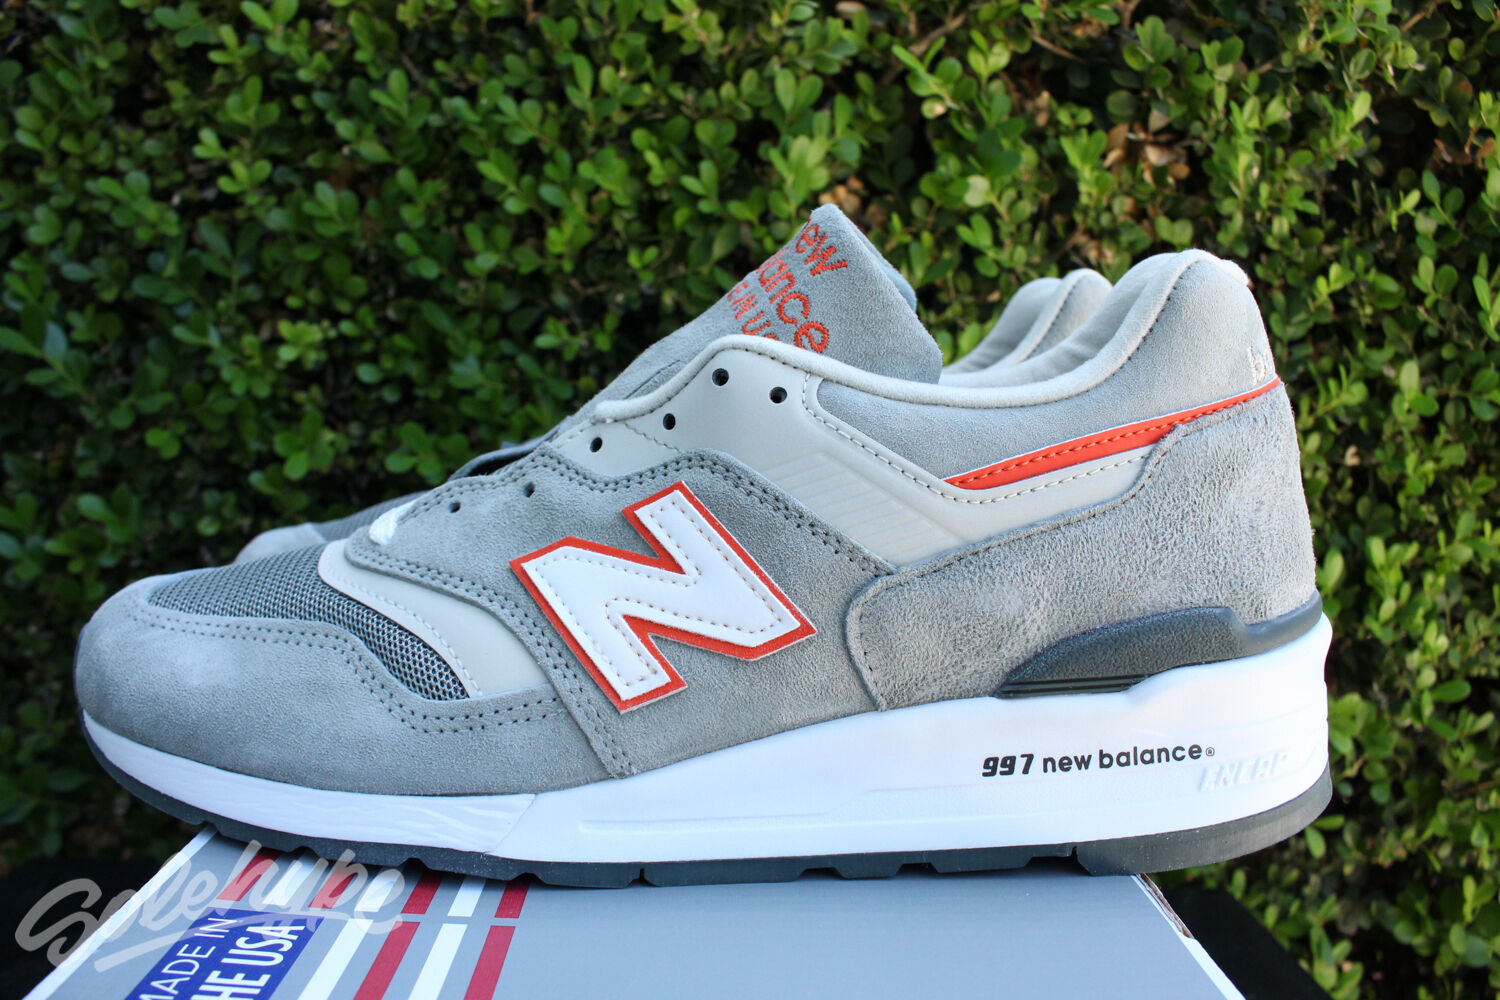 NEW BALANCE 997 SZ 7.5 AGE OF GRAY EXPLORATION MADE IN USA GRAY OF GREY ORANGE M997CHT aa14f7